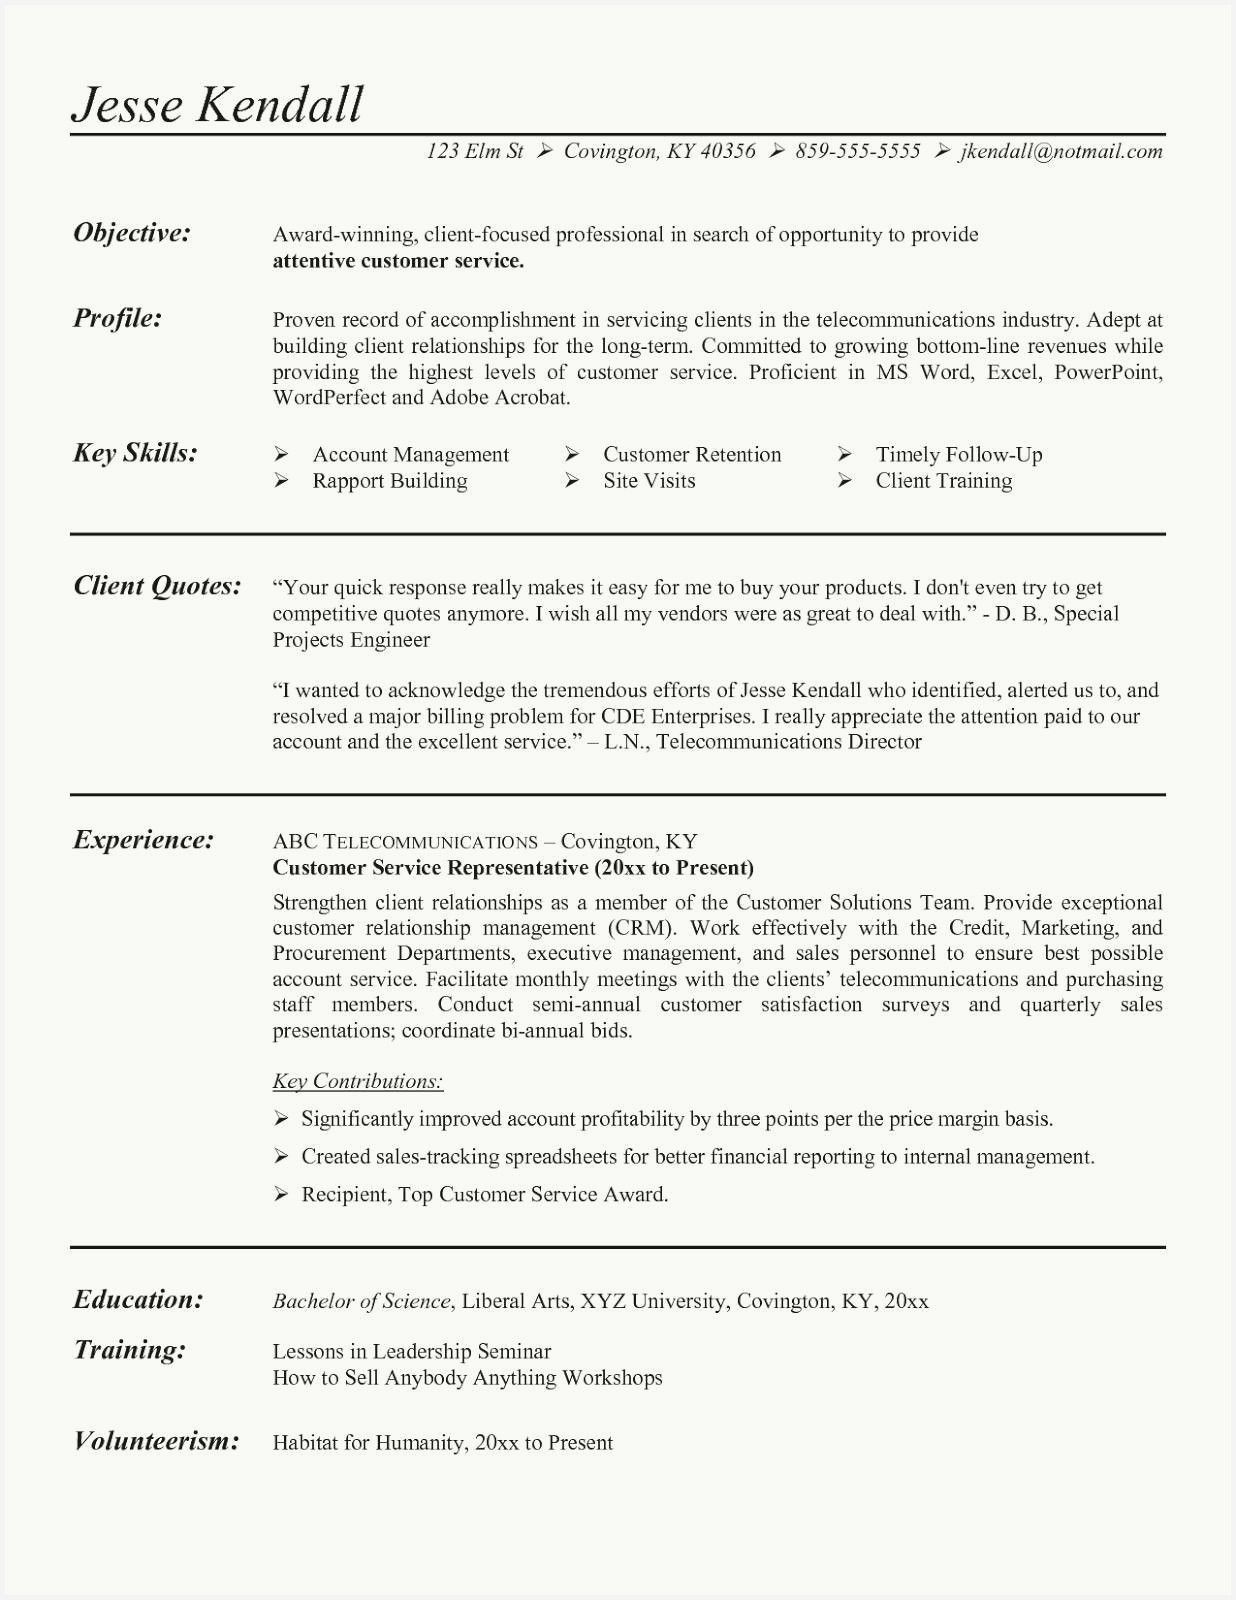 47 Example Customer Service Job Resume Gallery in 2020